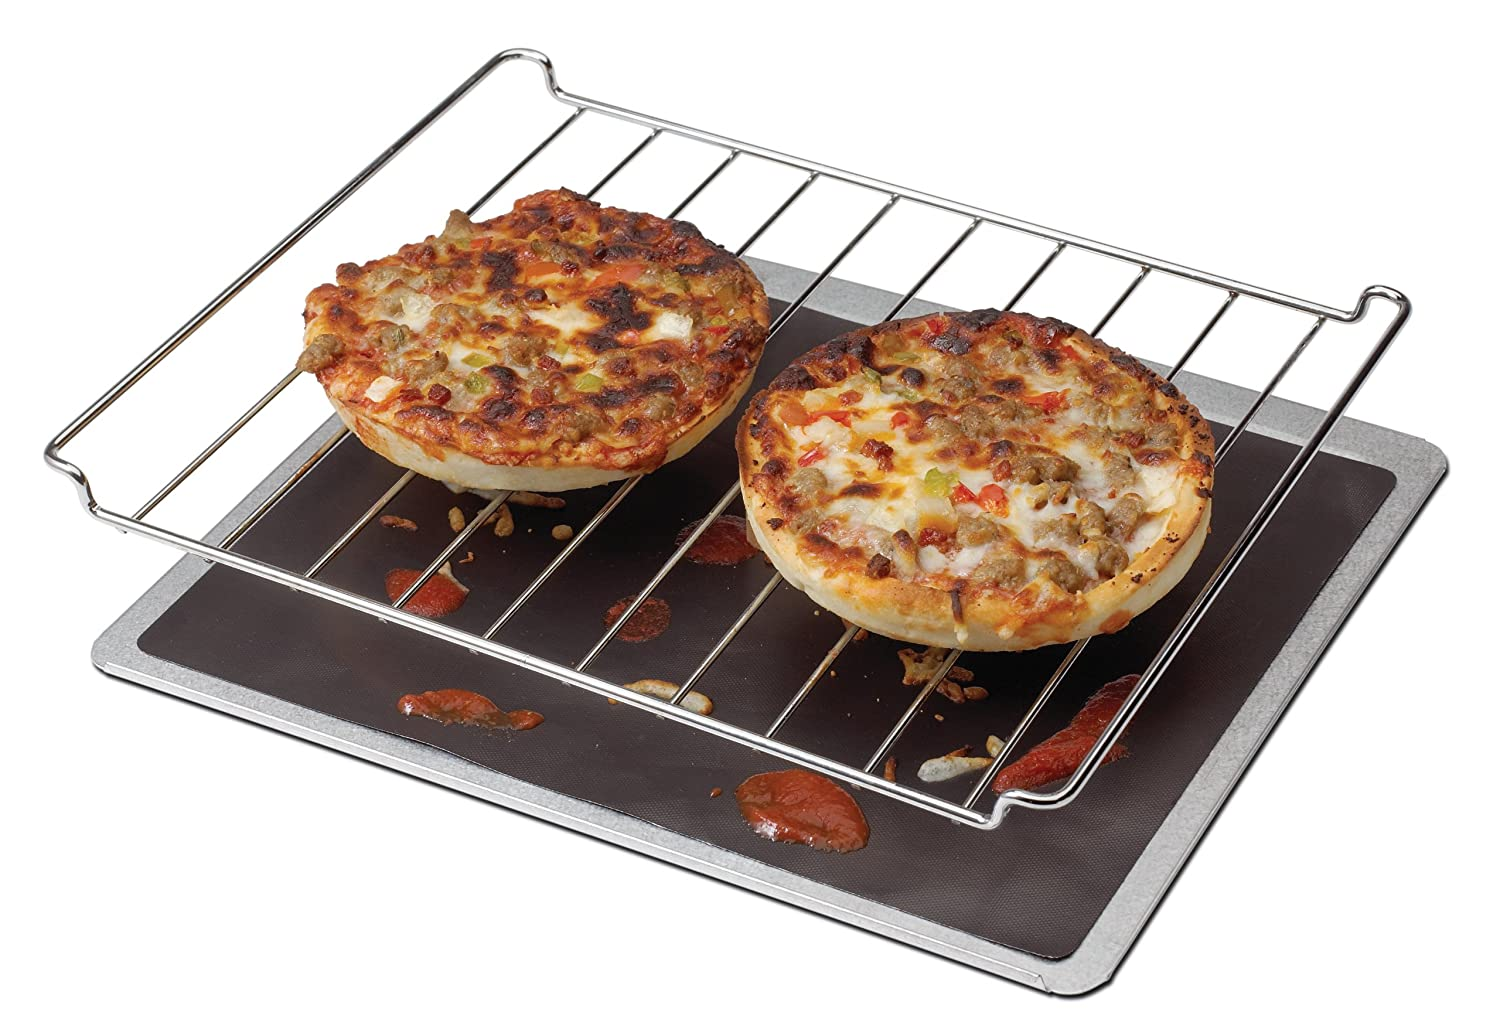 Chef's Planet 401 Nonstick Toaster Oven Liner Chef's Planet 401.00